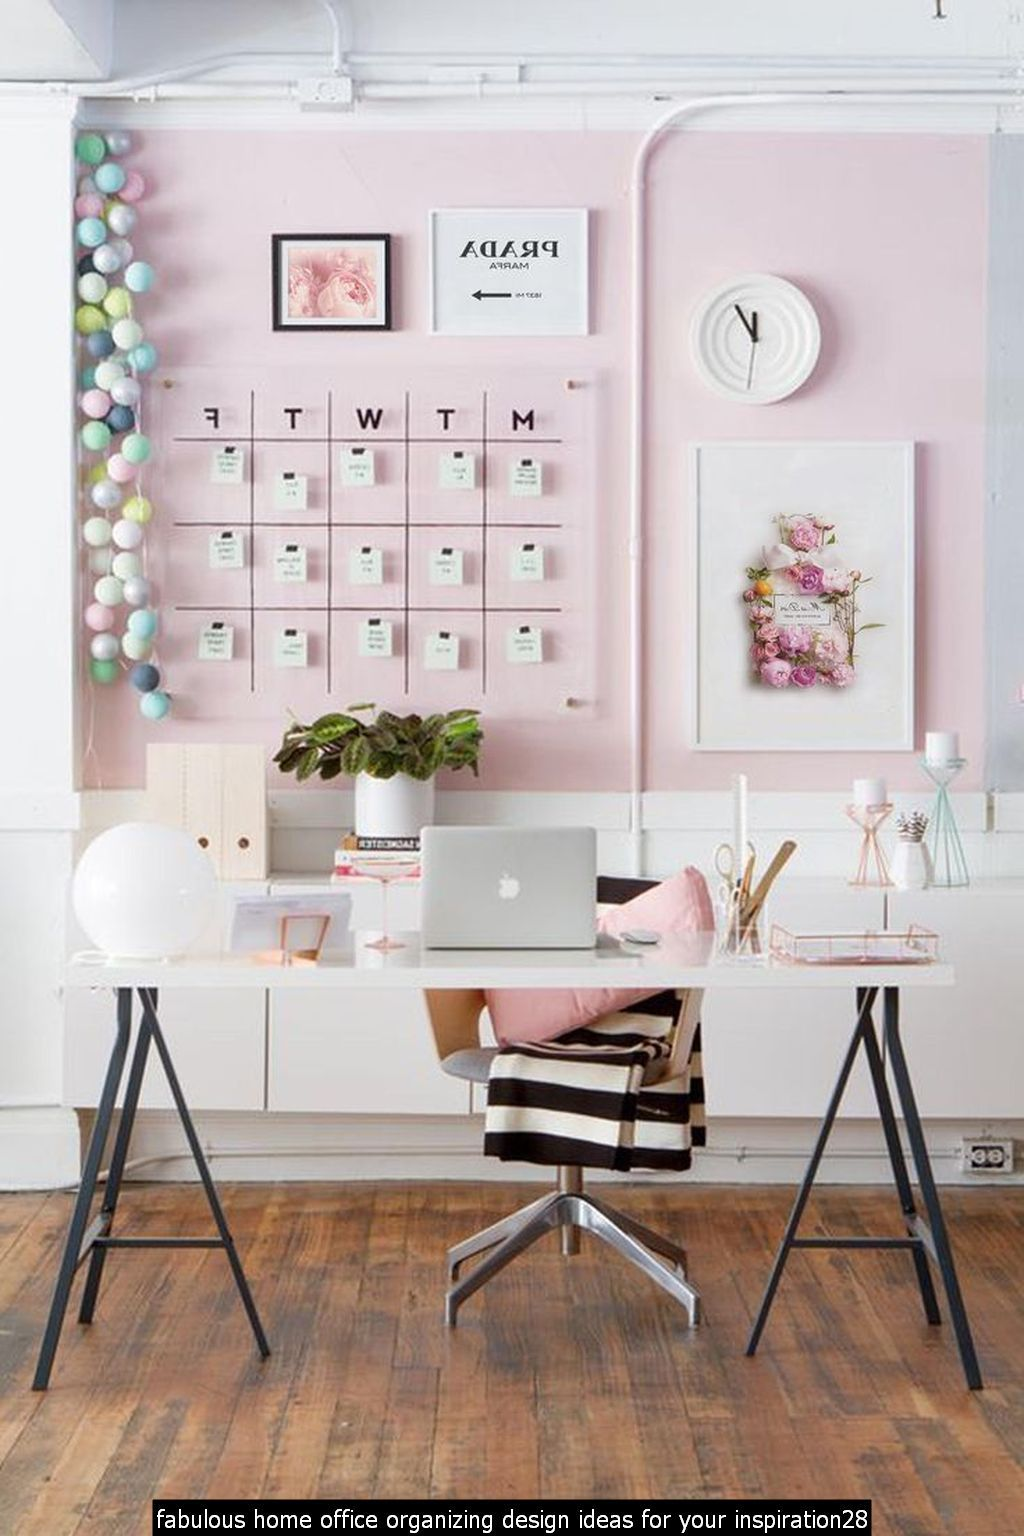 20 fabulous home office organizing design ideas for your